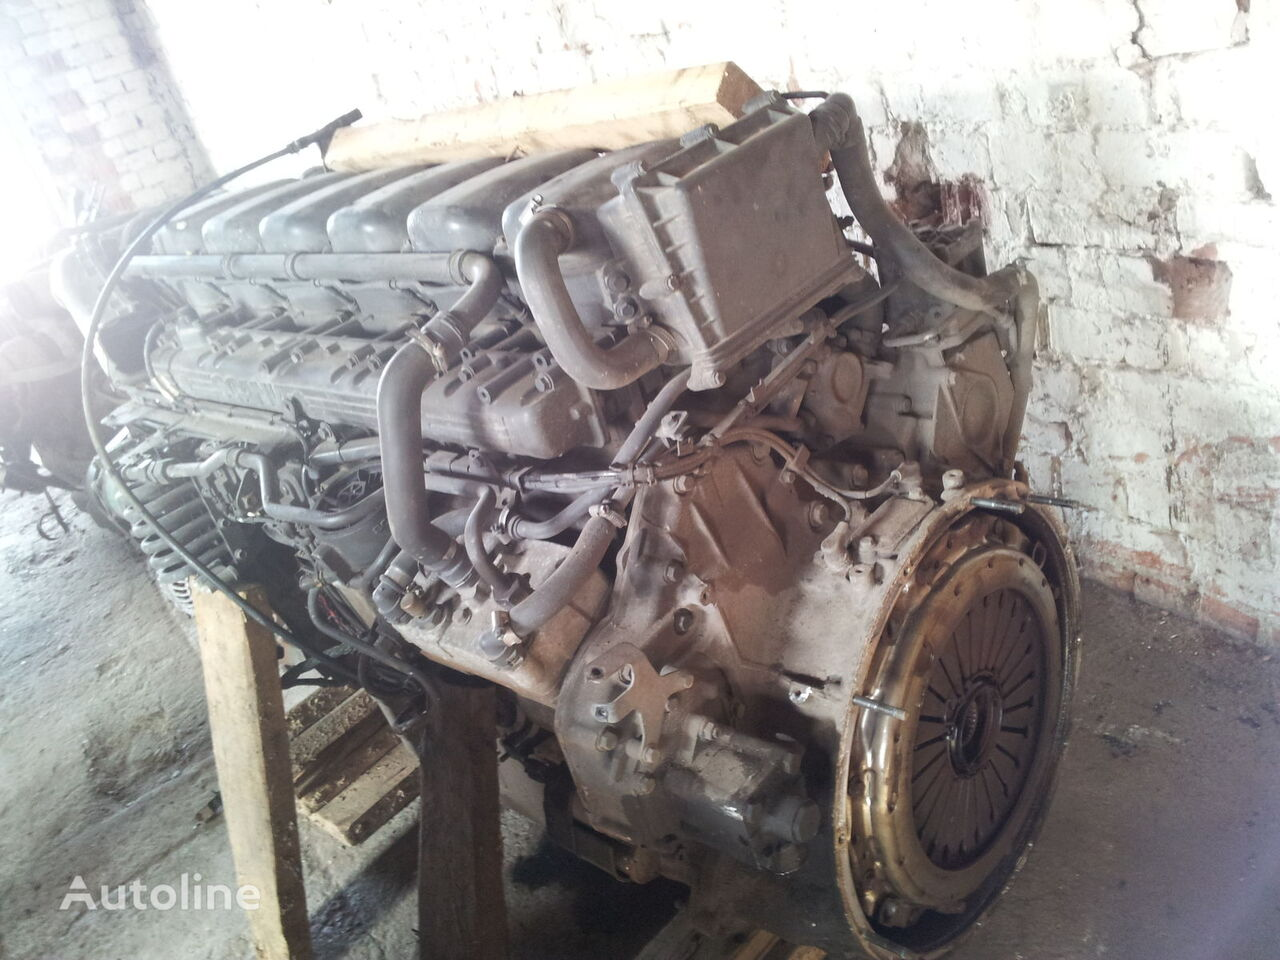 SCANIA R series HPI engine, EURO3, EURO4, DT1217, 480PS, DT1206, 470PS, engine for SCANIA R tractor unit